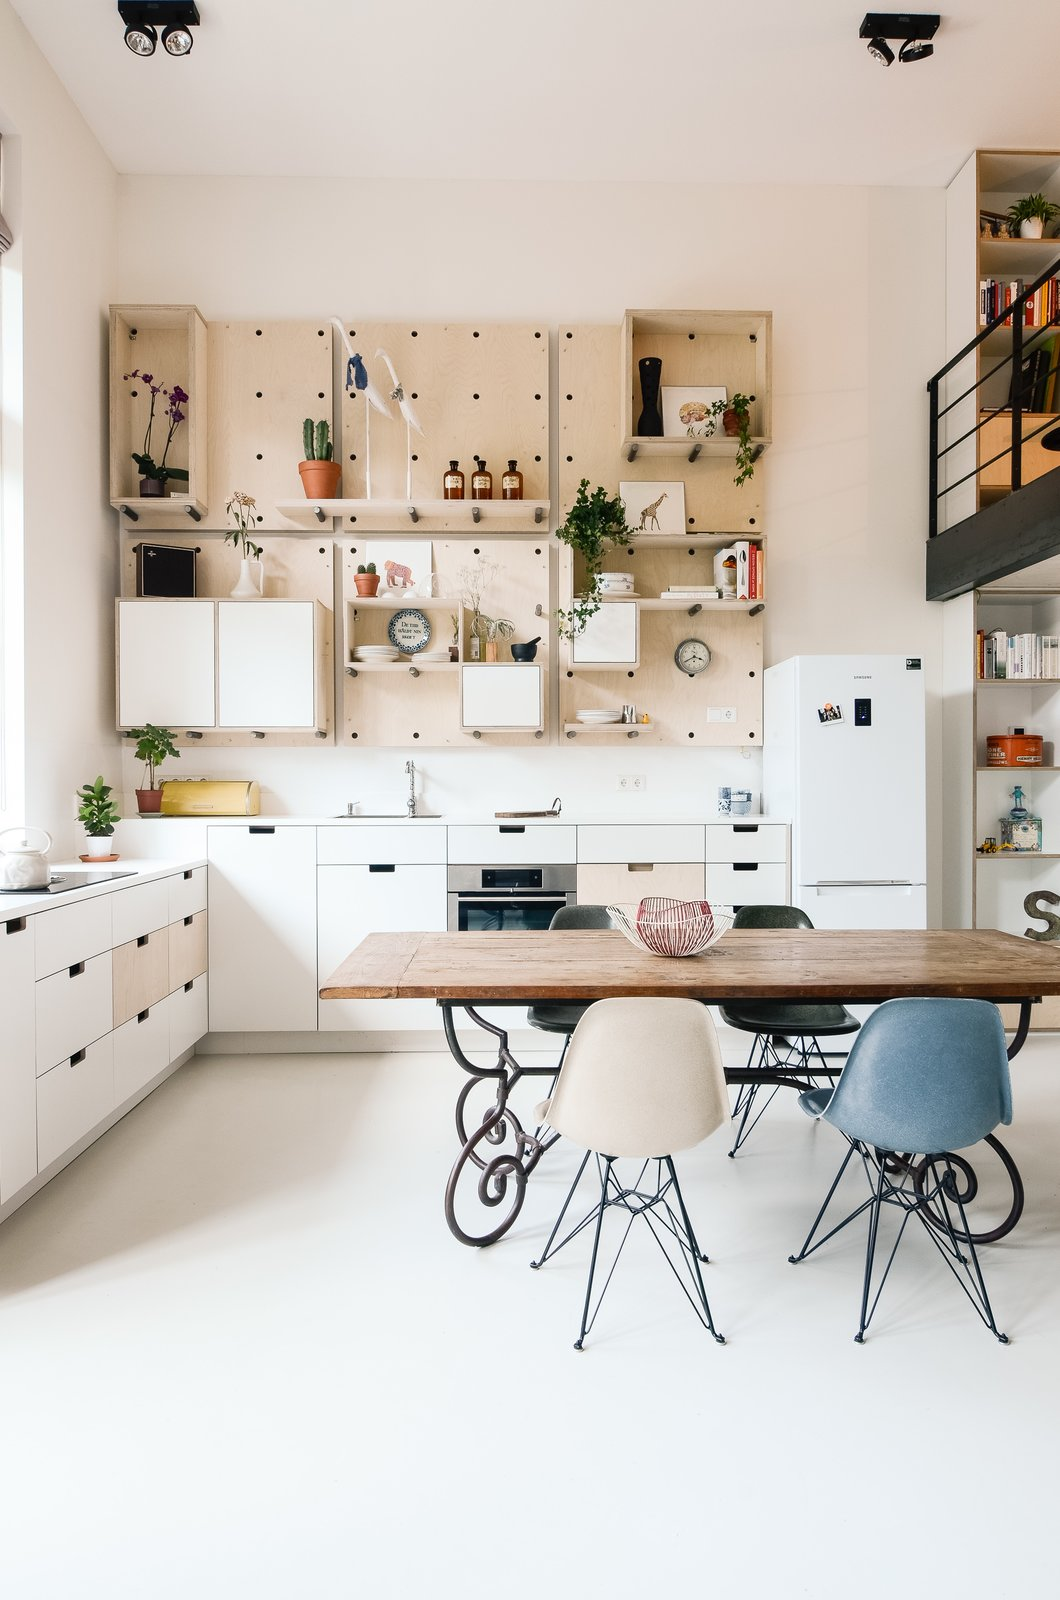 The kitchen is completely open to the main living area and features a custom birch pegboard wall. Eames dining chairs accent the space. Tagged: Kitchen.  Photo 4 of 21 in 20 Dream Kitchens from Schoolhouses Turned into Modern Homes